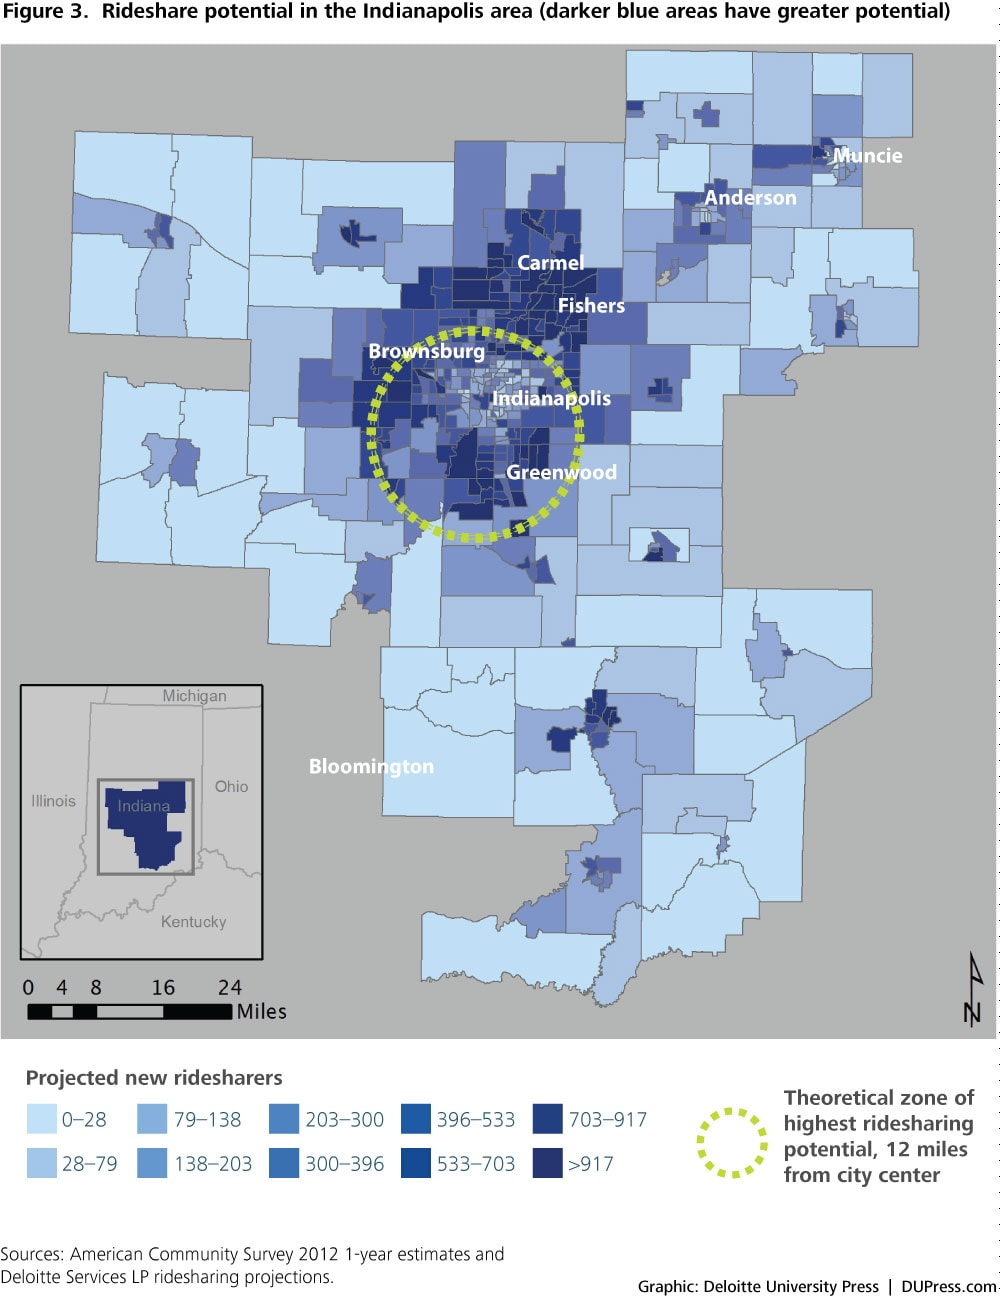 DUP_1027_Figure 3: Rideshare potential in the Indianapolis area